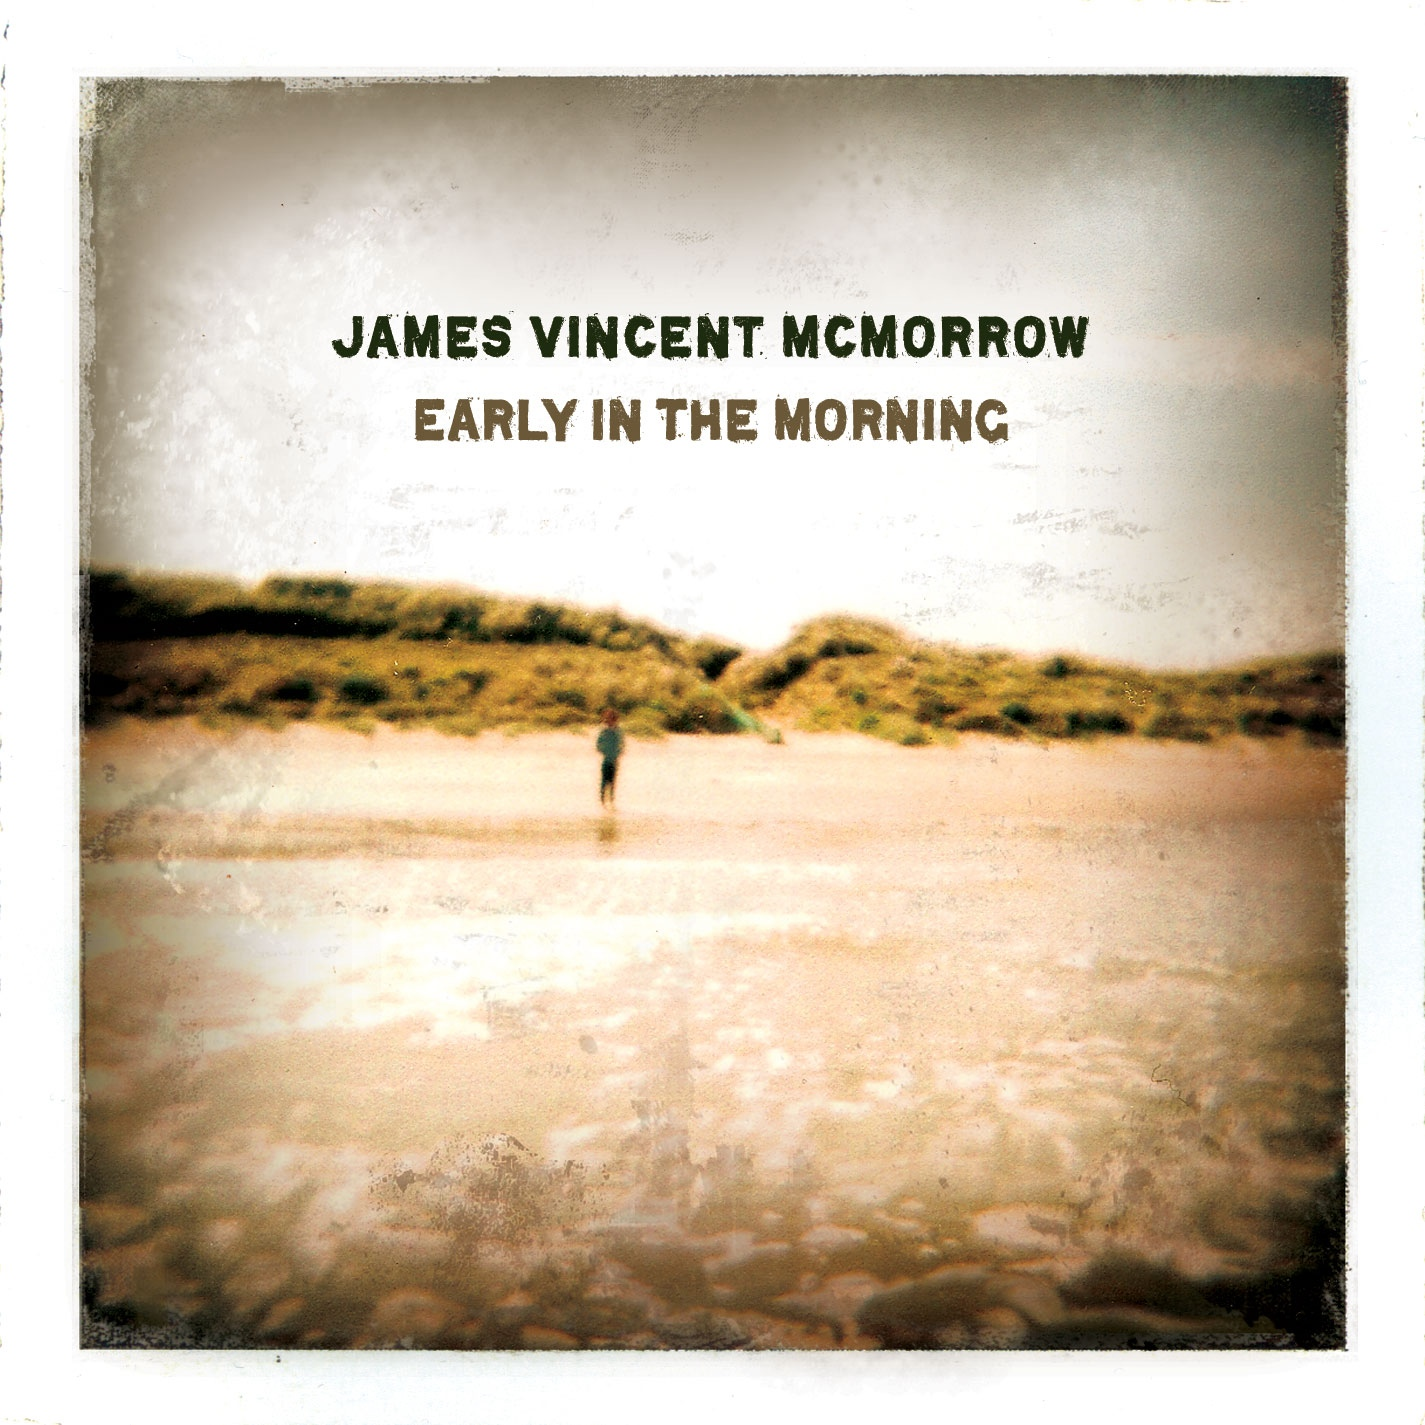 http://www.jubox.fr/wp-content/uploads/2011/03/James-Vincent-McMorrow.jpg